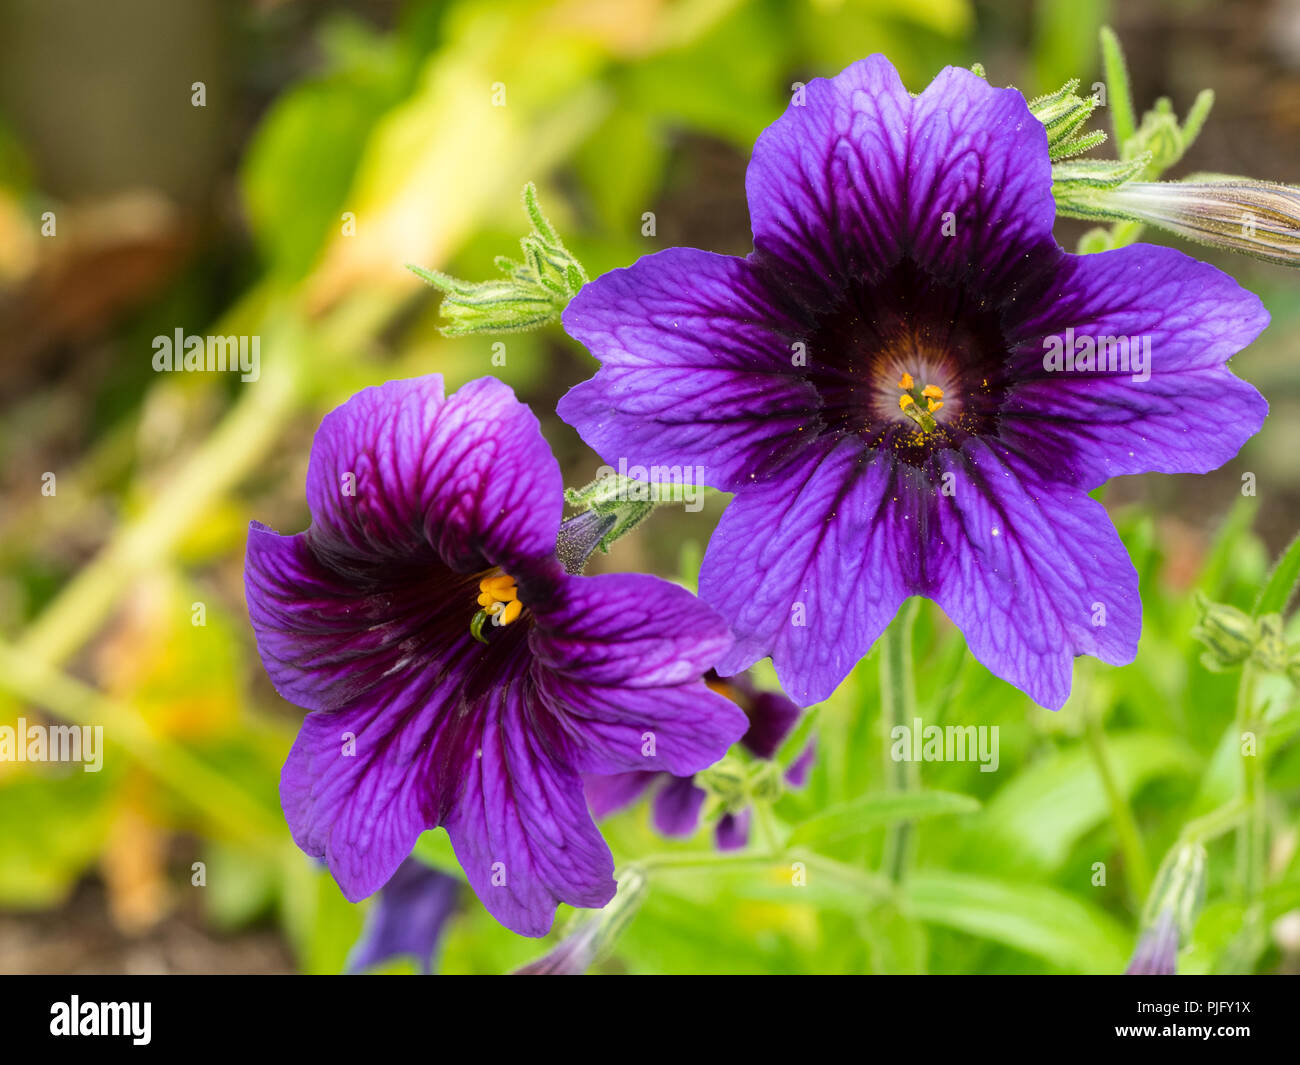 Exotic, velvety, dark throated purple blue flowers of the hardy annual bedding plant, Salpiglossis sinuata 'Kew Blue' - Stock Image